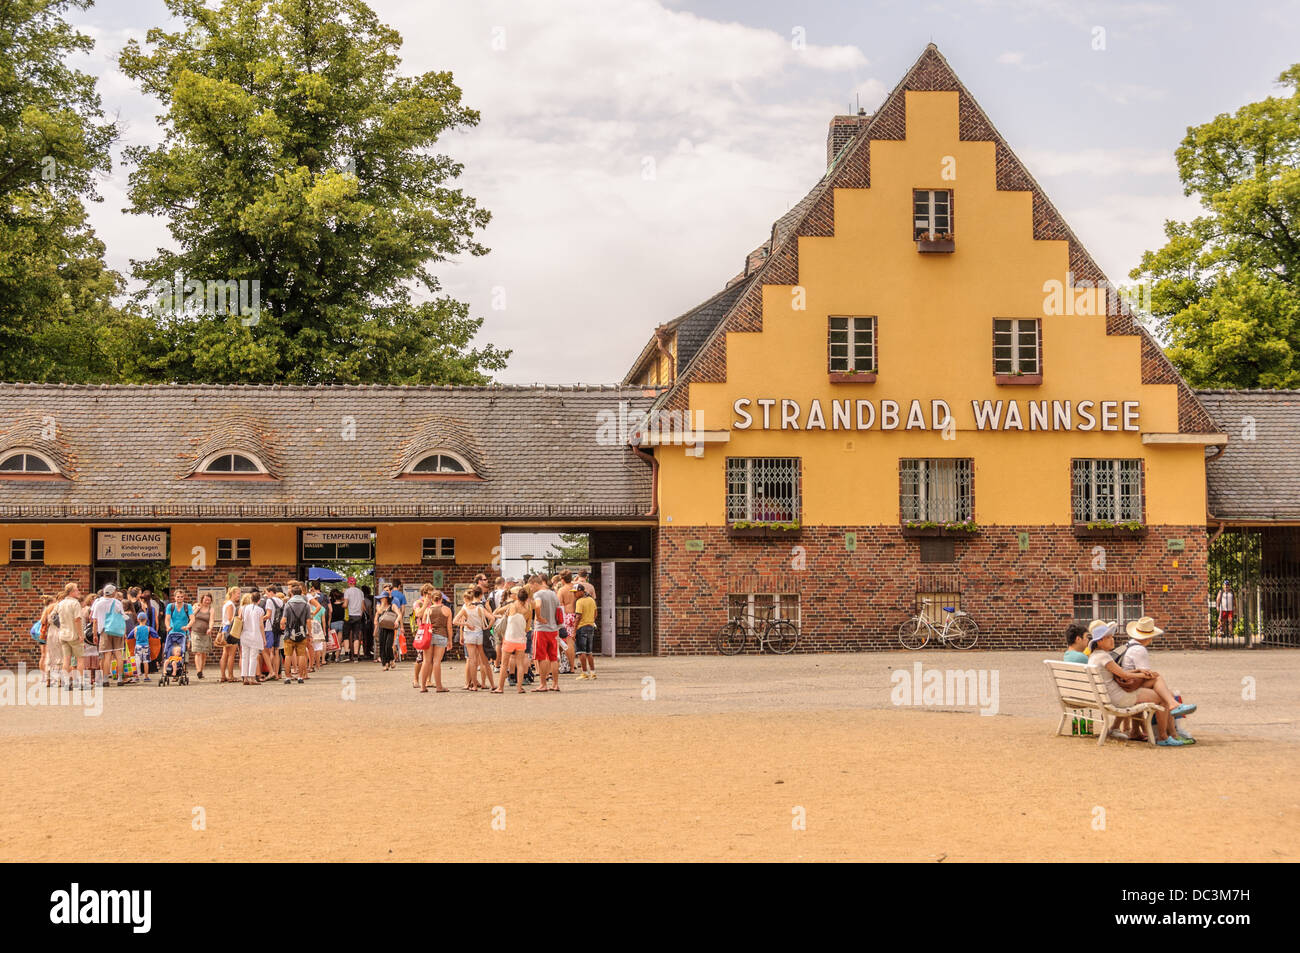 People queue up in front of the Strandbad Wannsee, the largest inland lido in Europe – Steglitz-Zehlendorf, Berlin Stock Photo